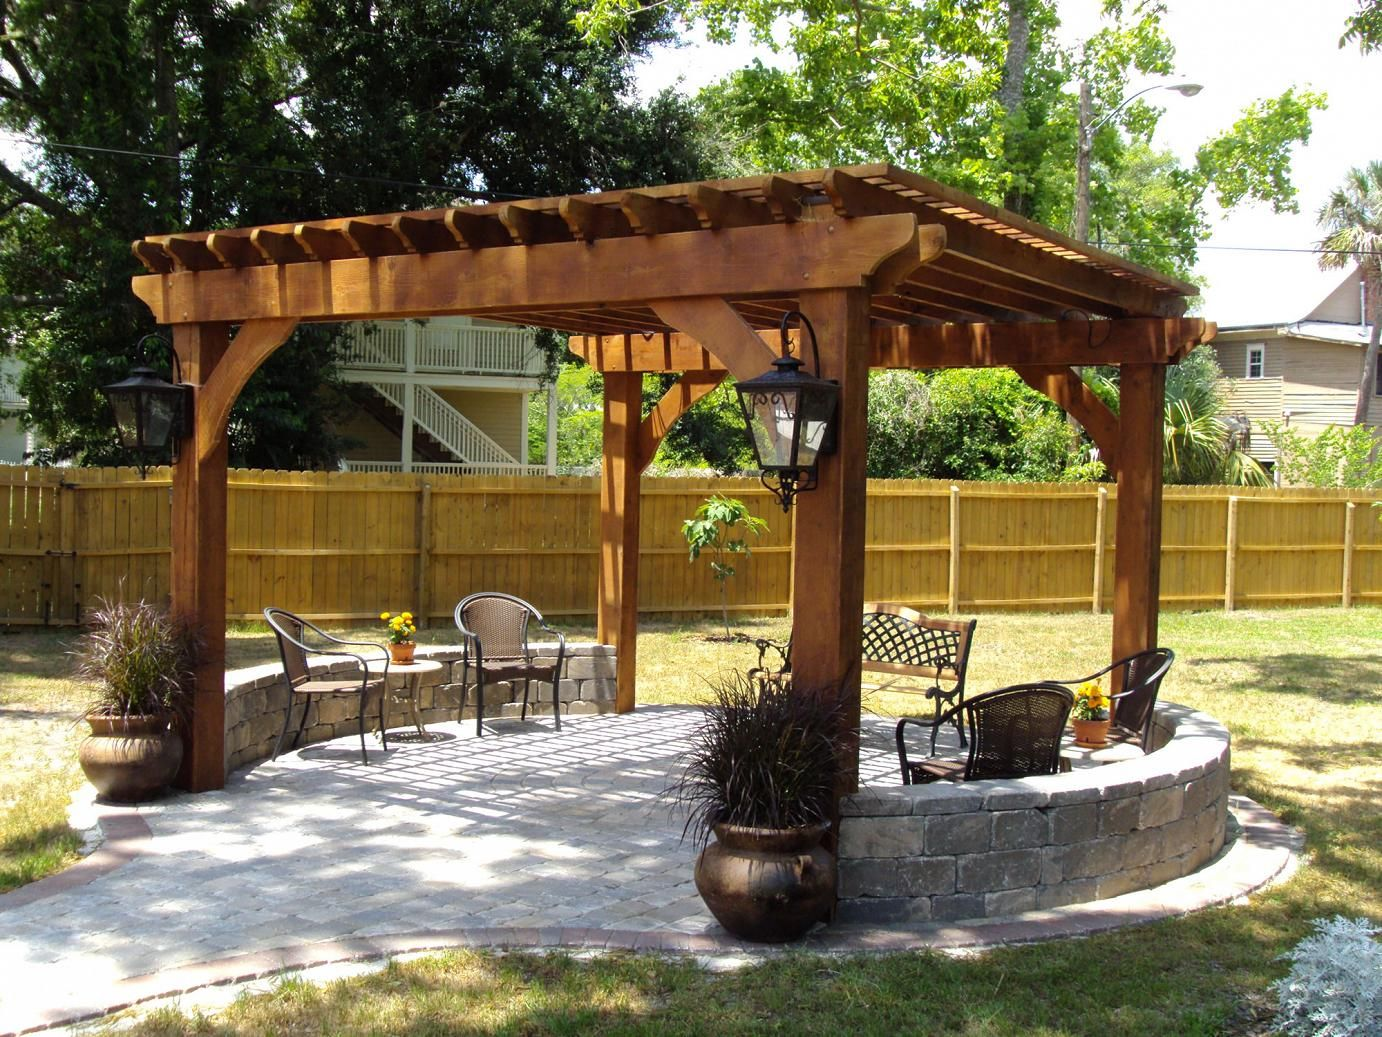 Outdoor Pergolas-Carrollton TX Landscape Designs & Outdoor Living Areas-We offer Landscape Design, Outdoor Patios & Pergolas, Outdoor Living Spaces, Stonescapes, Residential & Commercial Landscaping, Irrigation Installation & Repairs, Drainage Systems, Landscape Lighting, Outdoor Living Spaces, Tree Service, Lawn Service, and more.